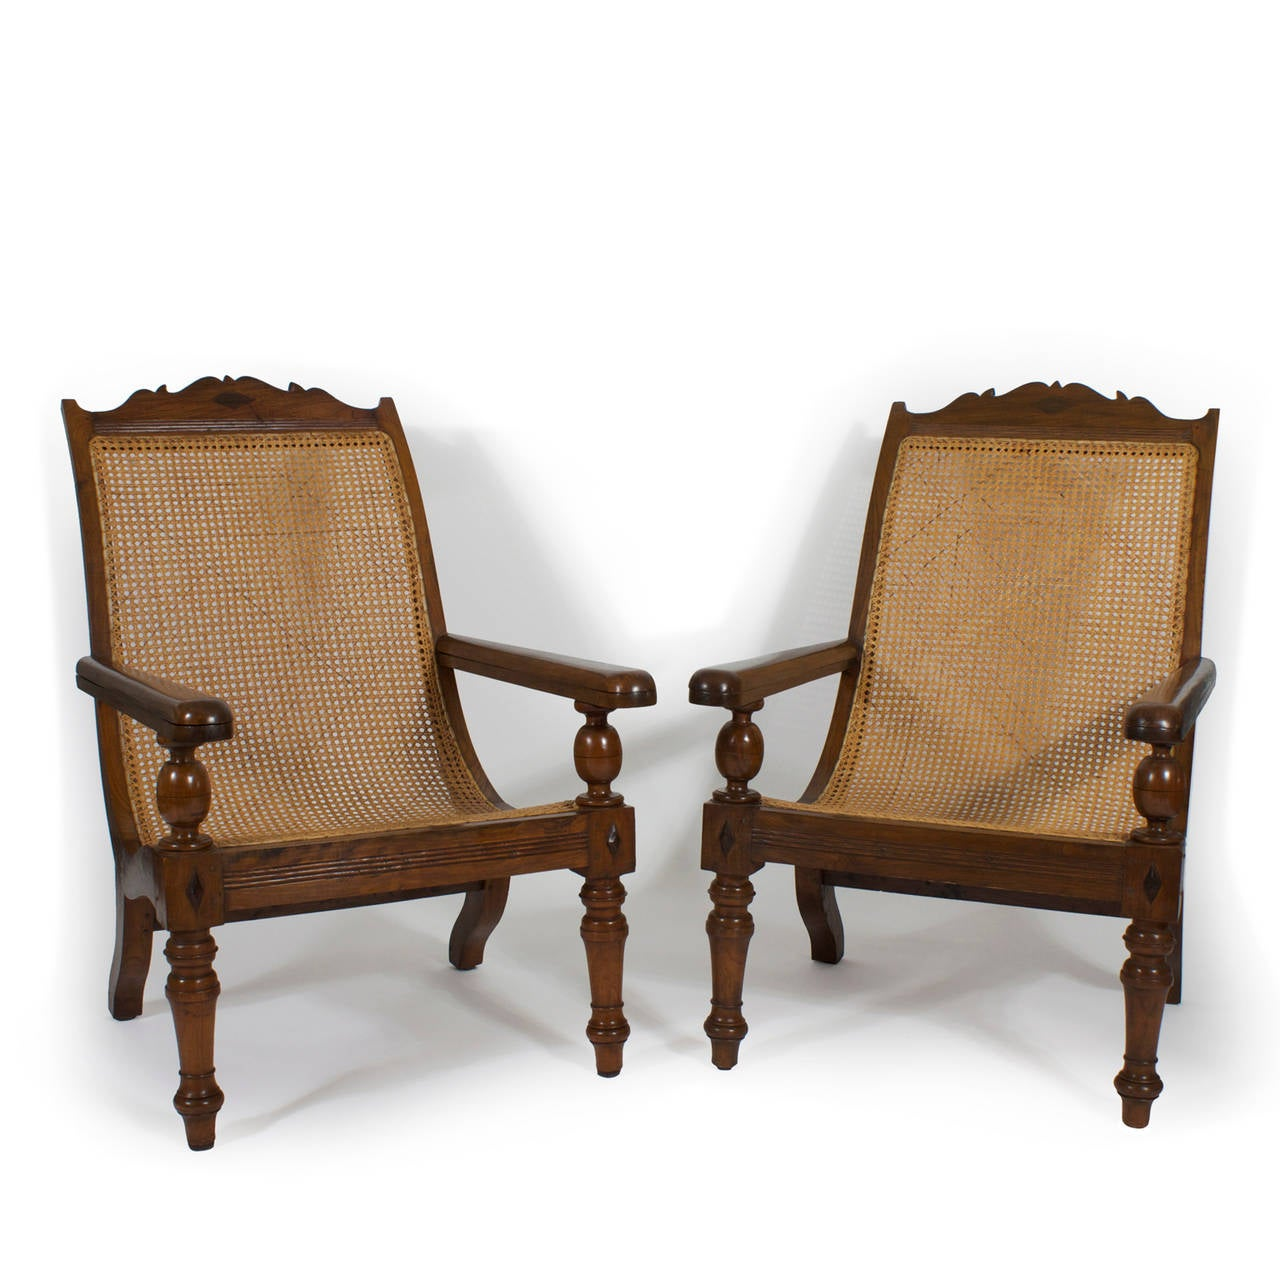 Colonial Chair Pair Of British Colonial Planters Or Plantation Chairs At